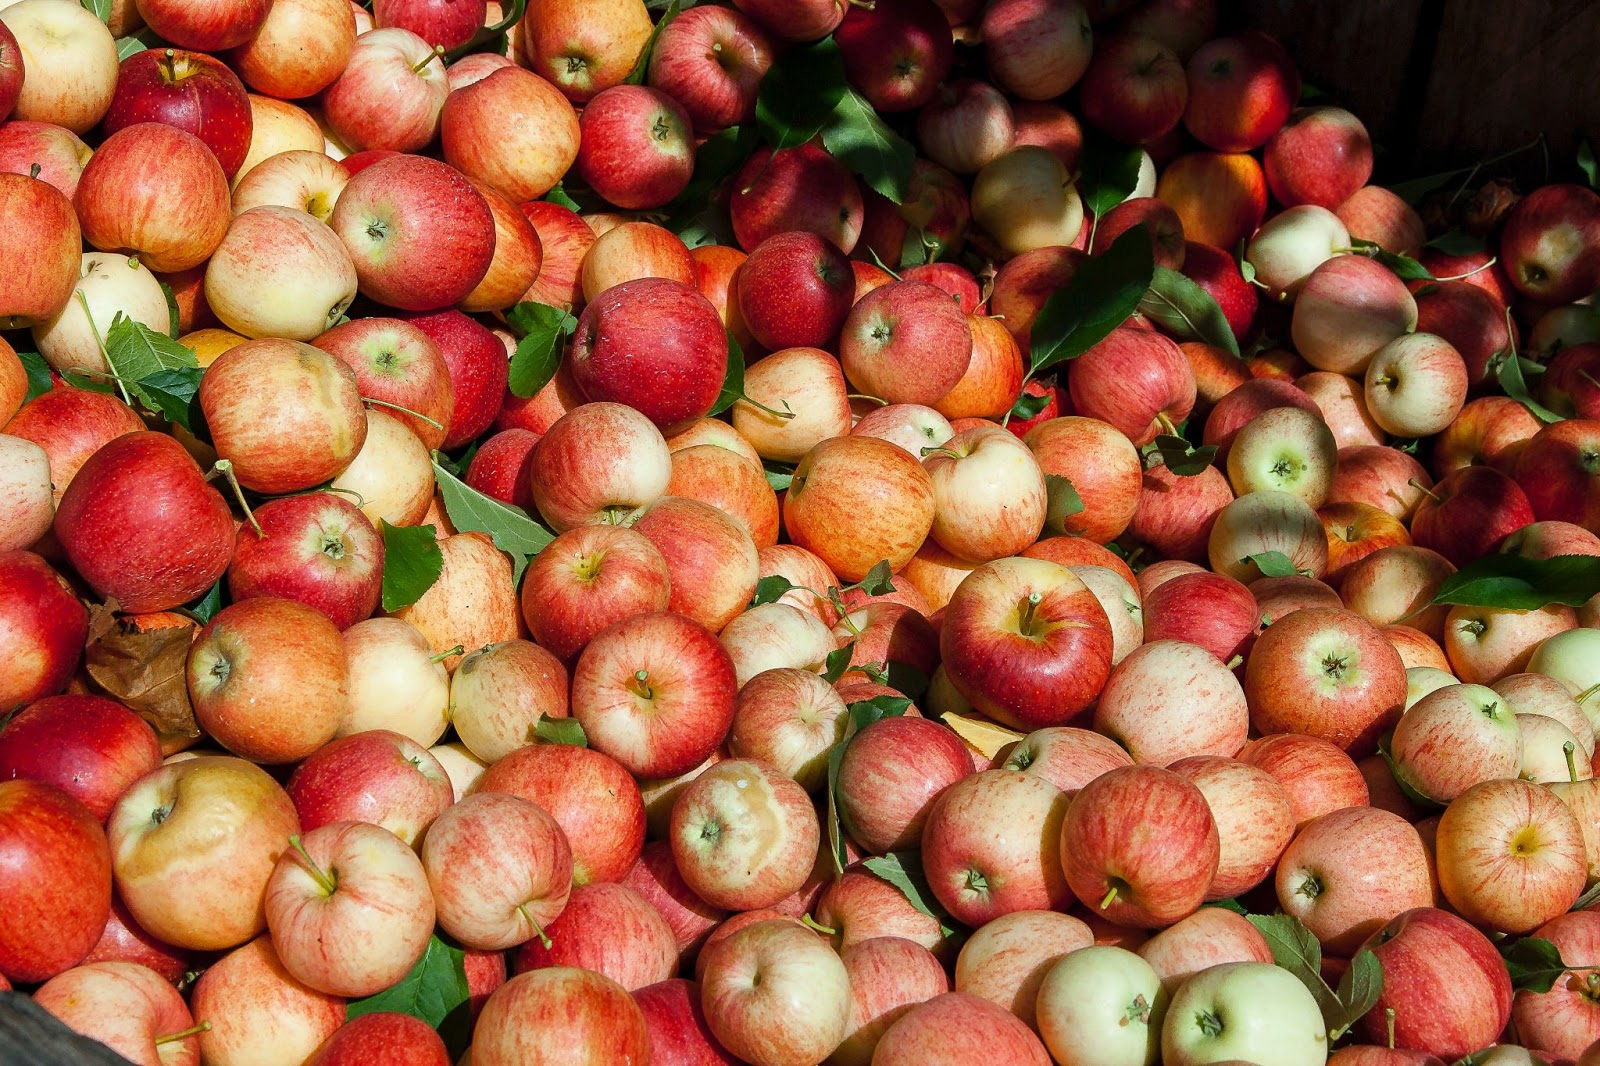 a large collection of red apples